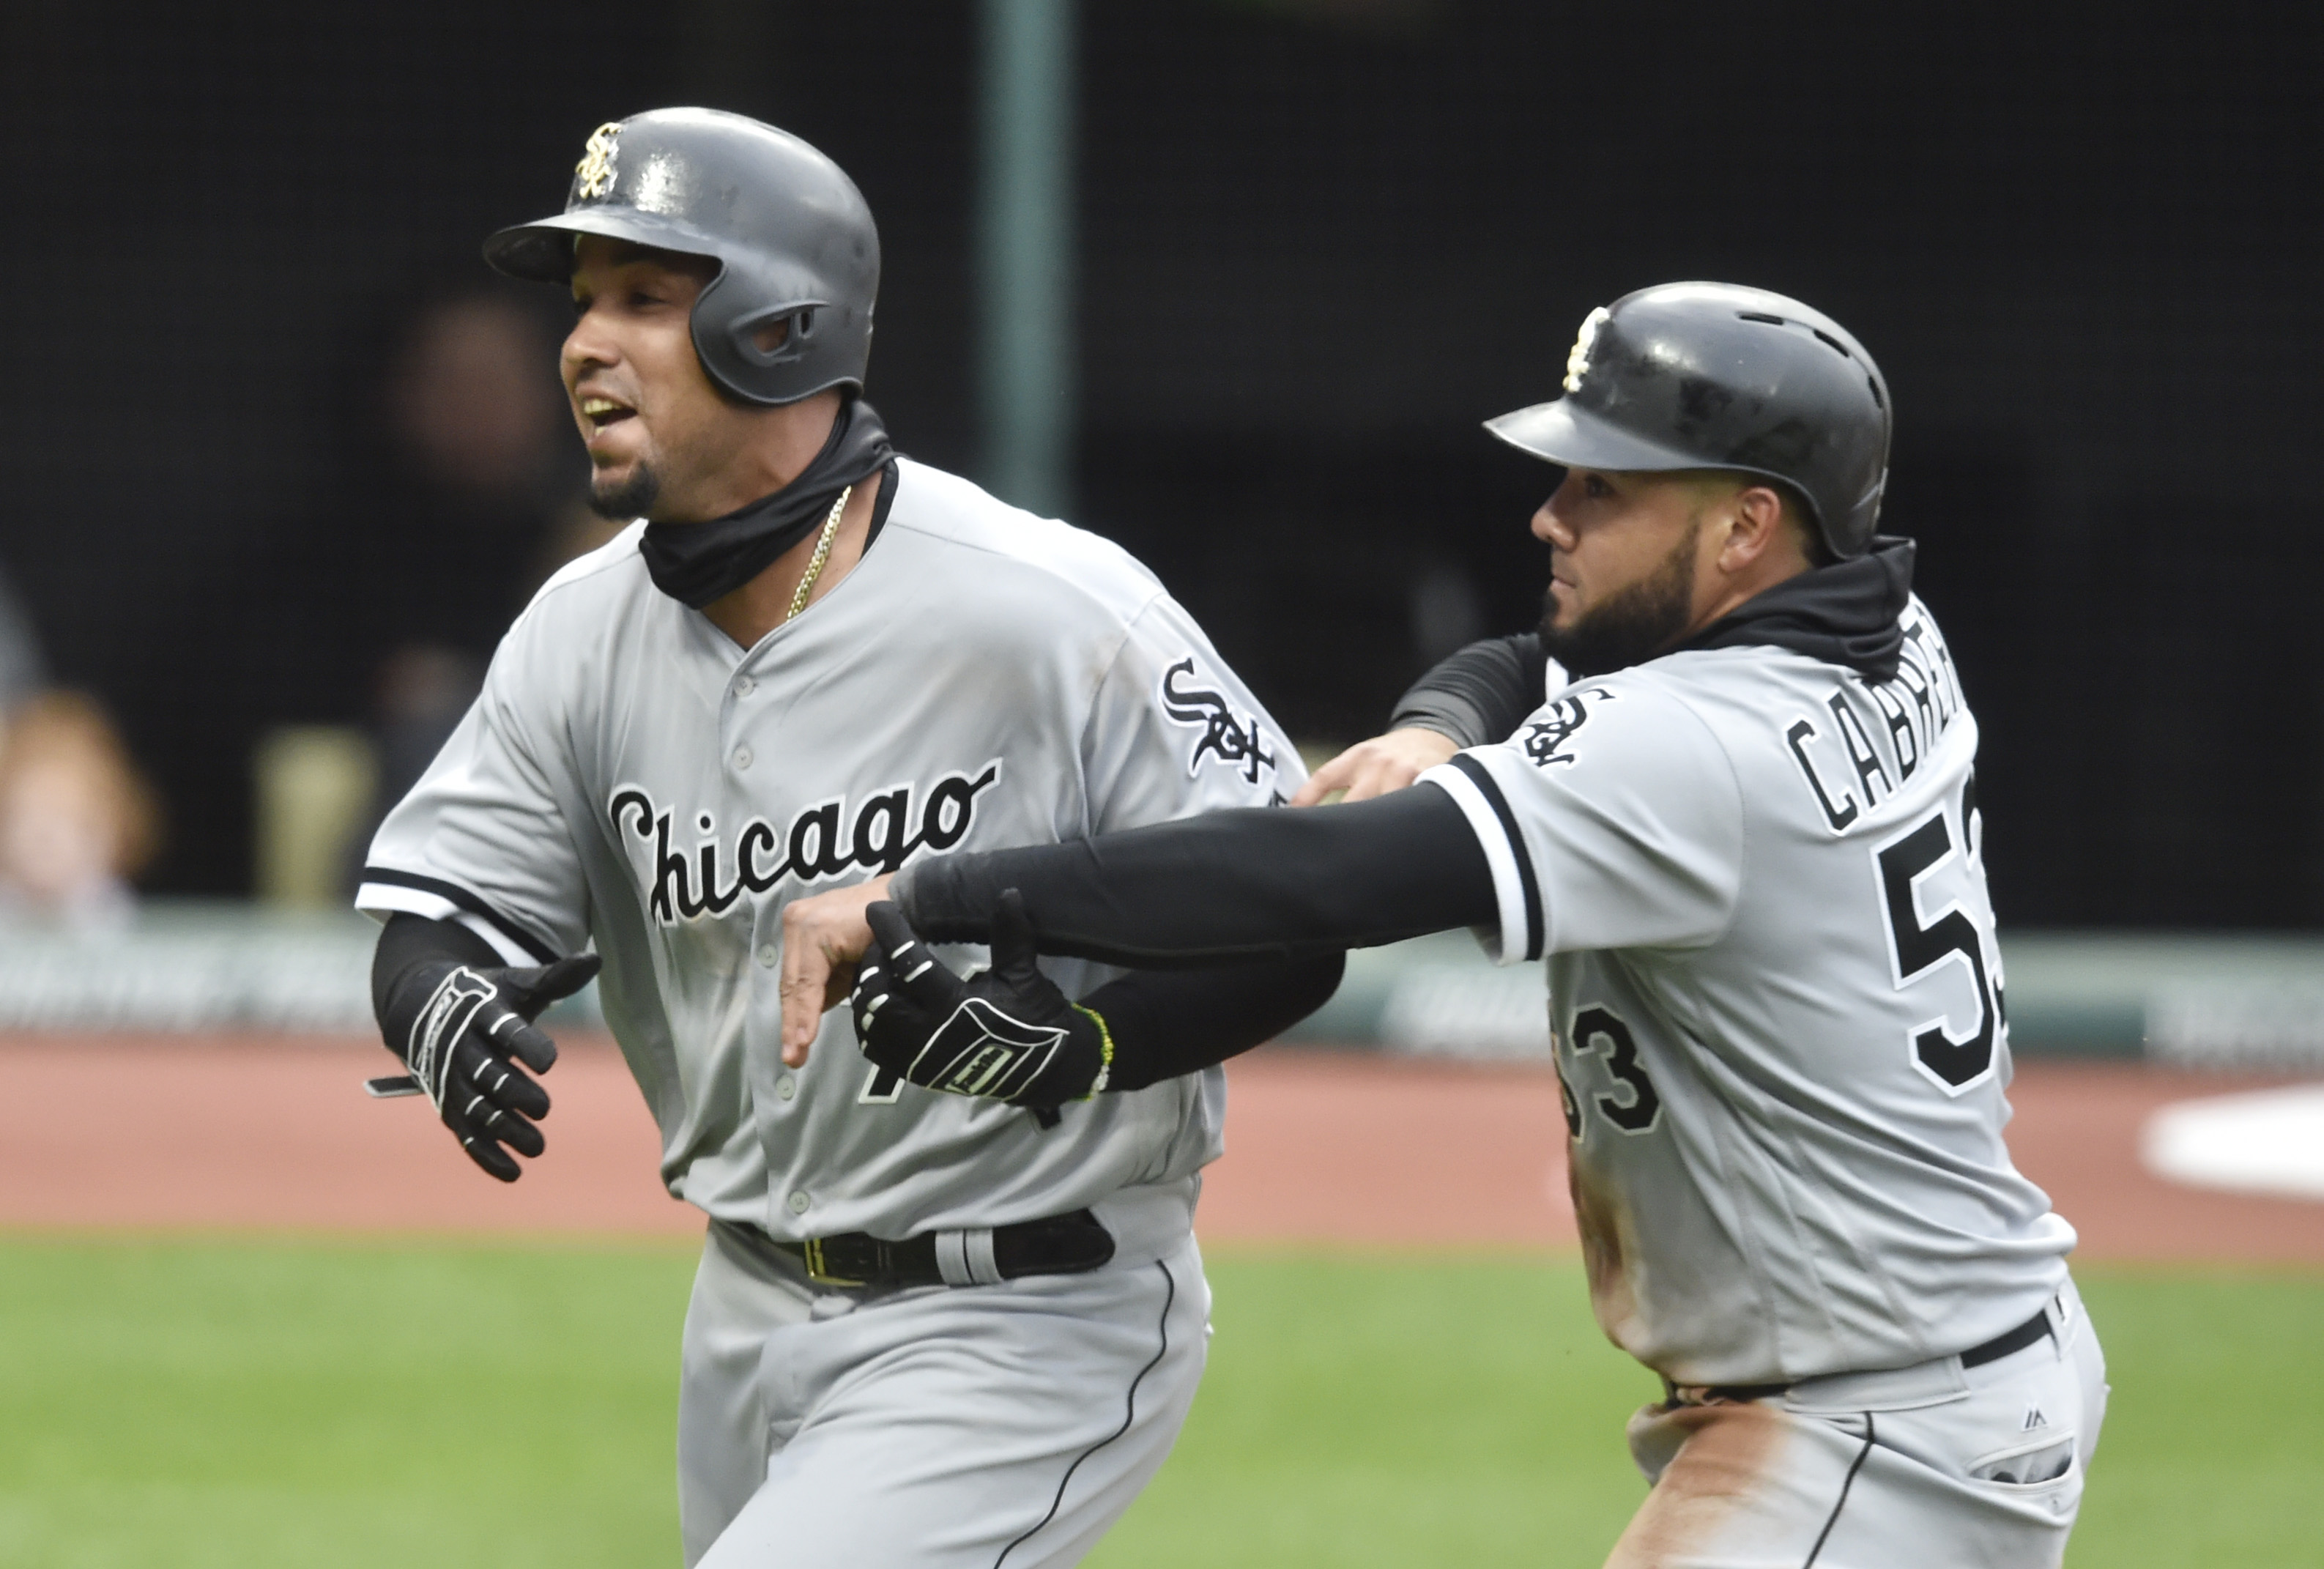 Jose Abreu and Melky Cabrera